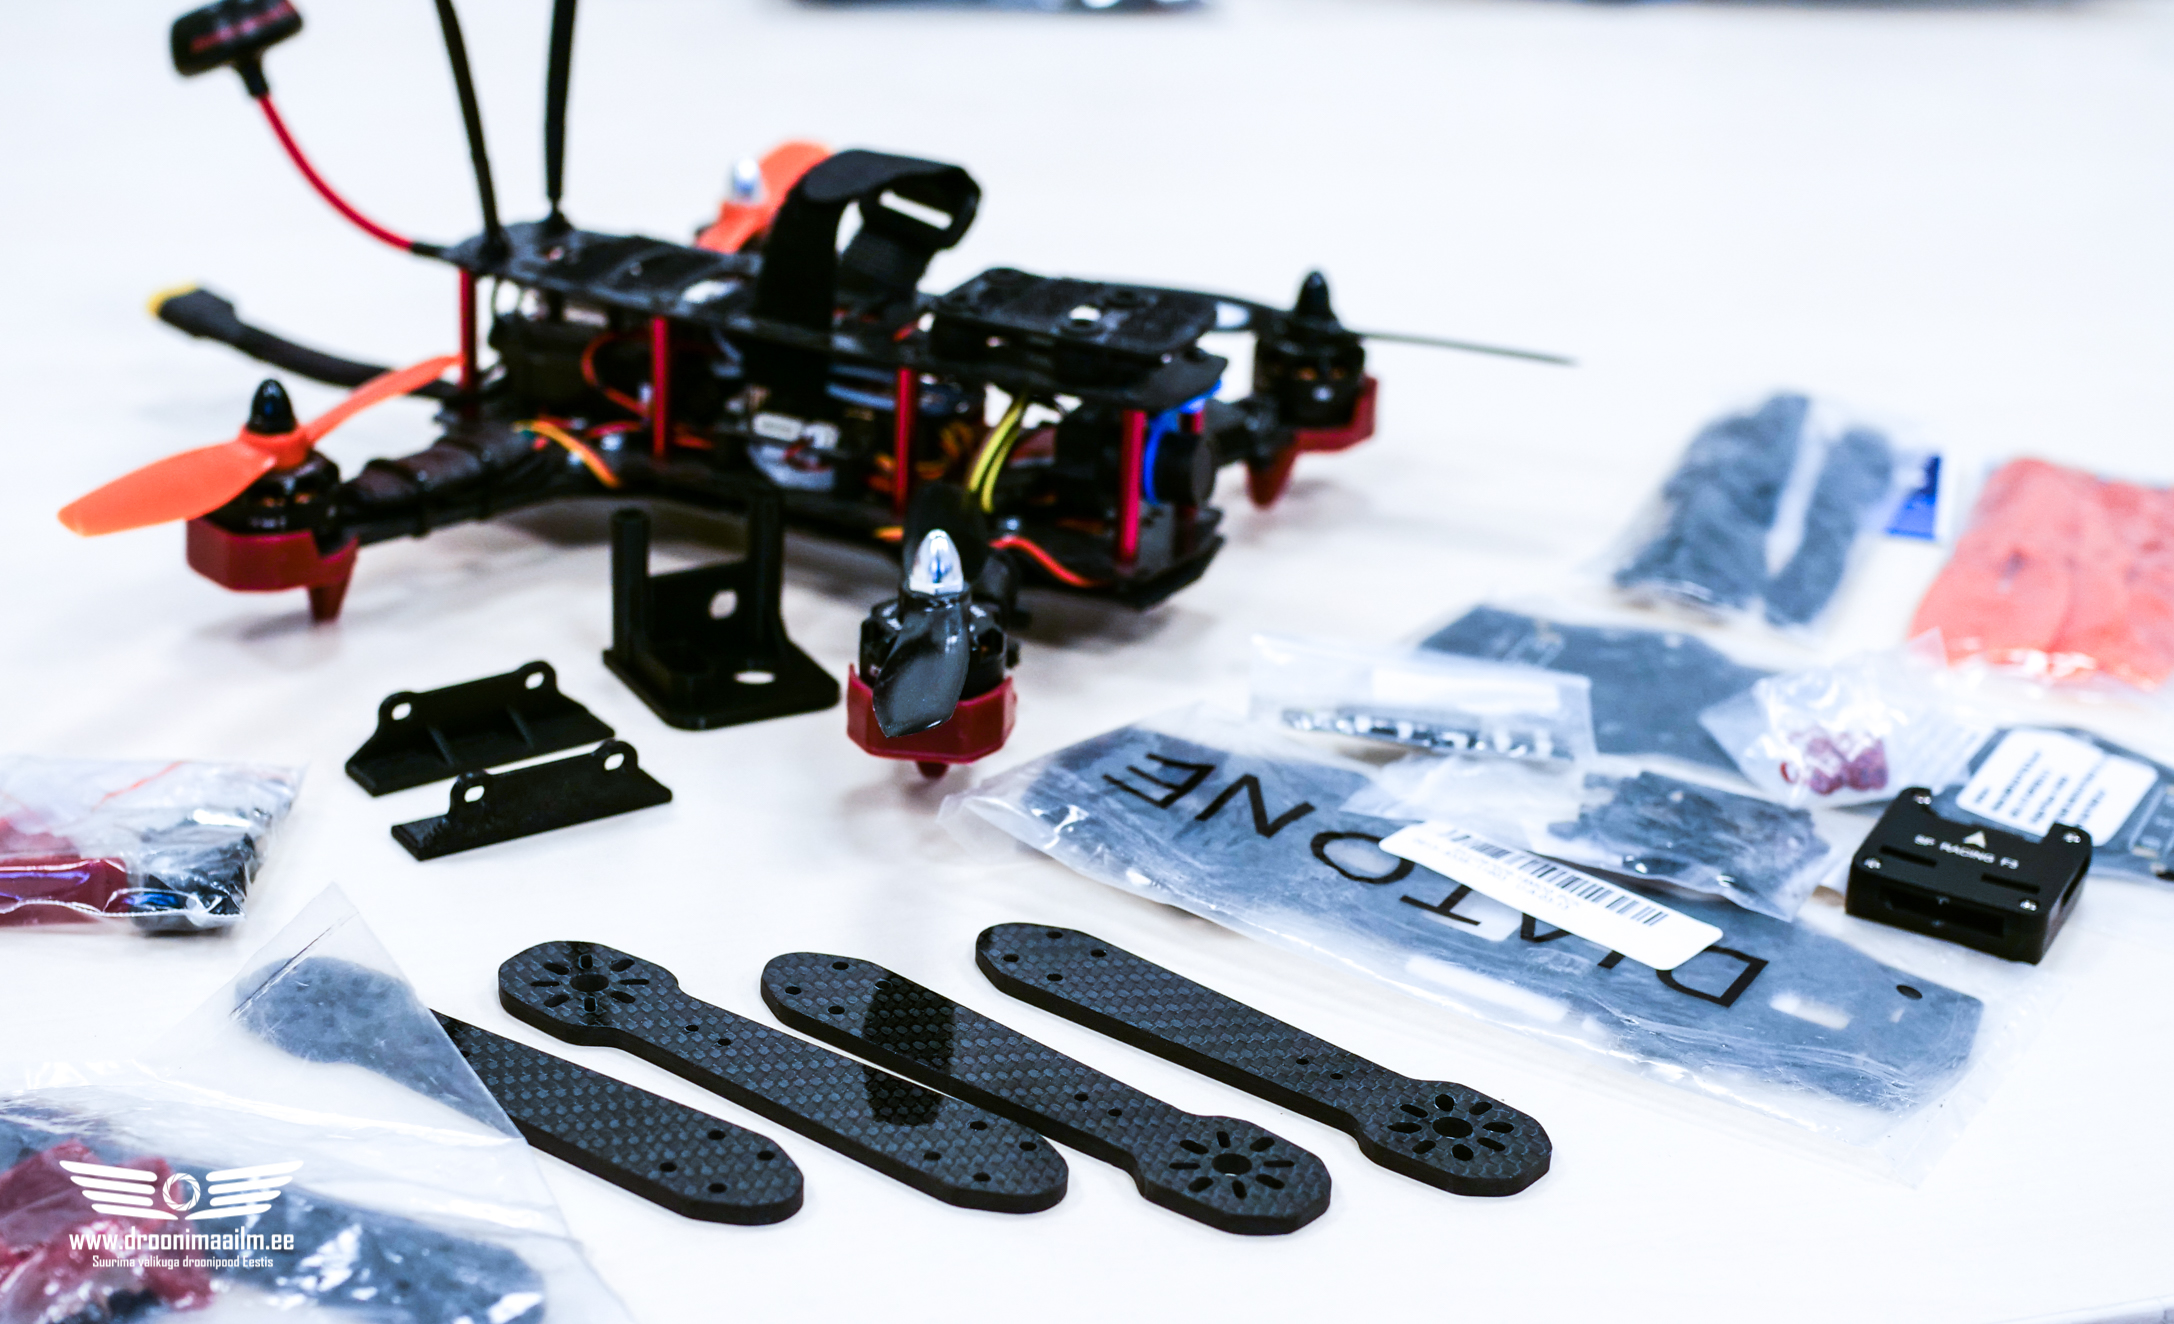 ZMR250 FPV Racer droon (ARF) (used)